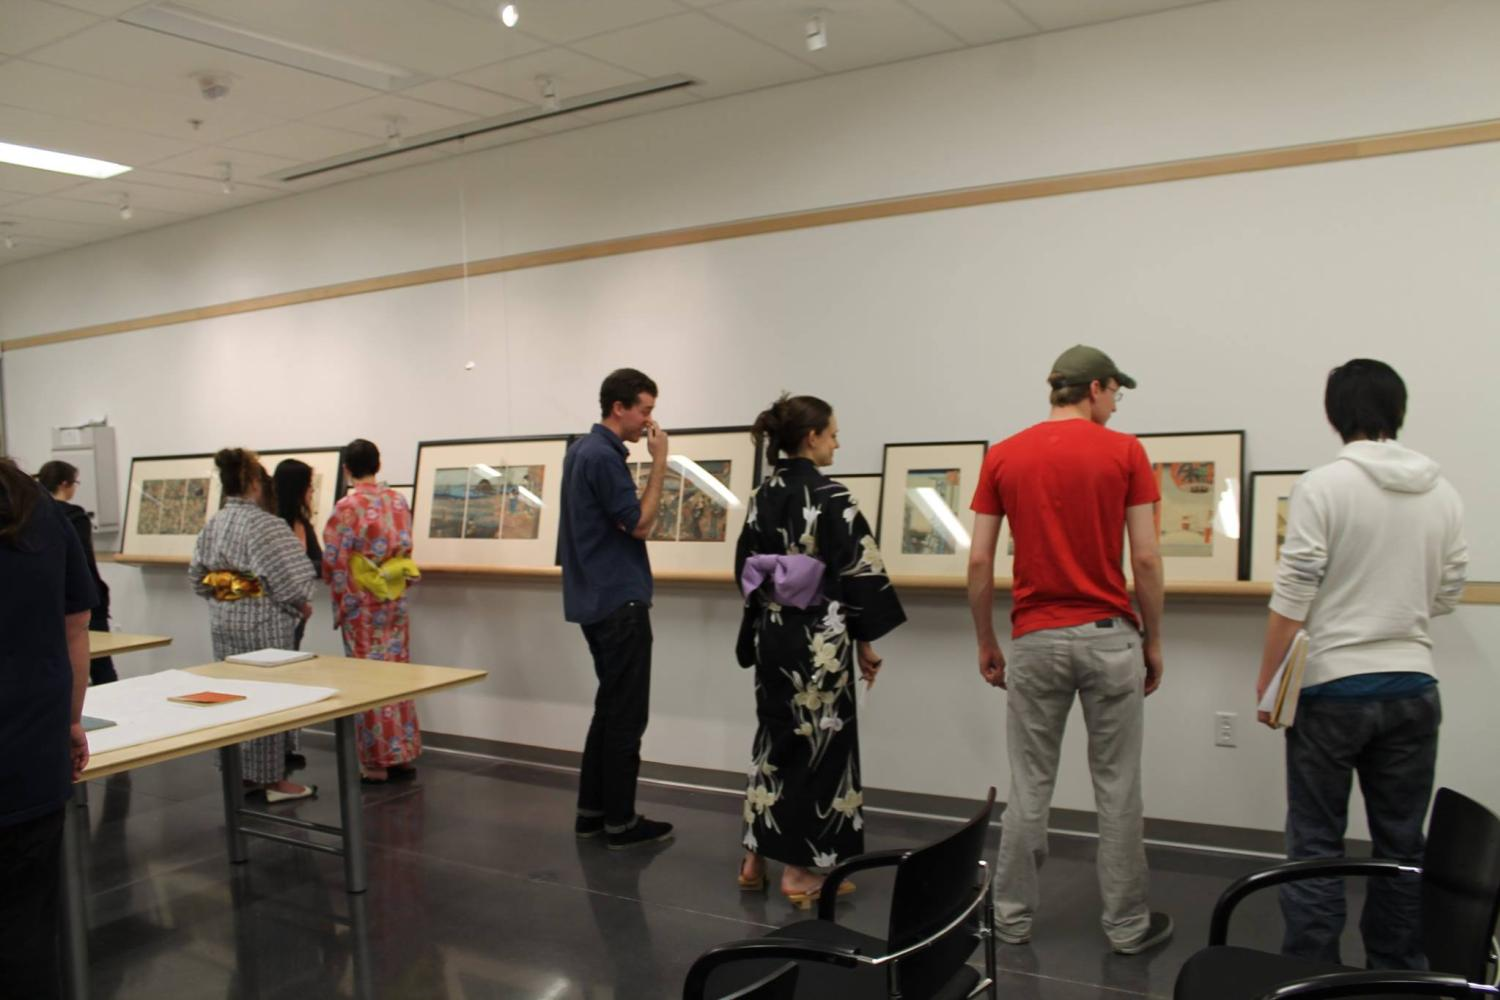 Students view framed prints on a wall.